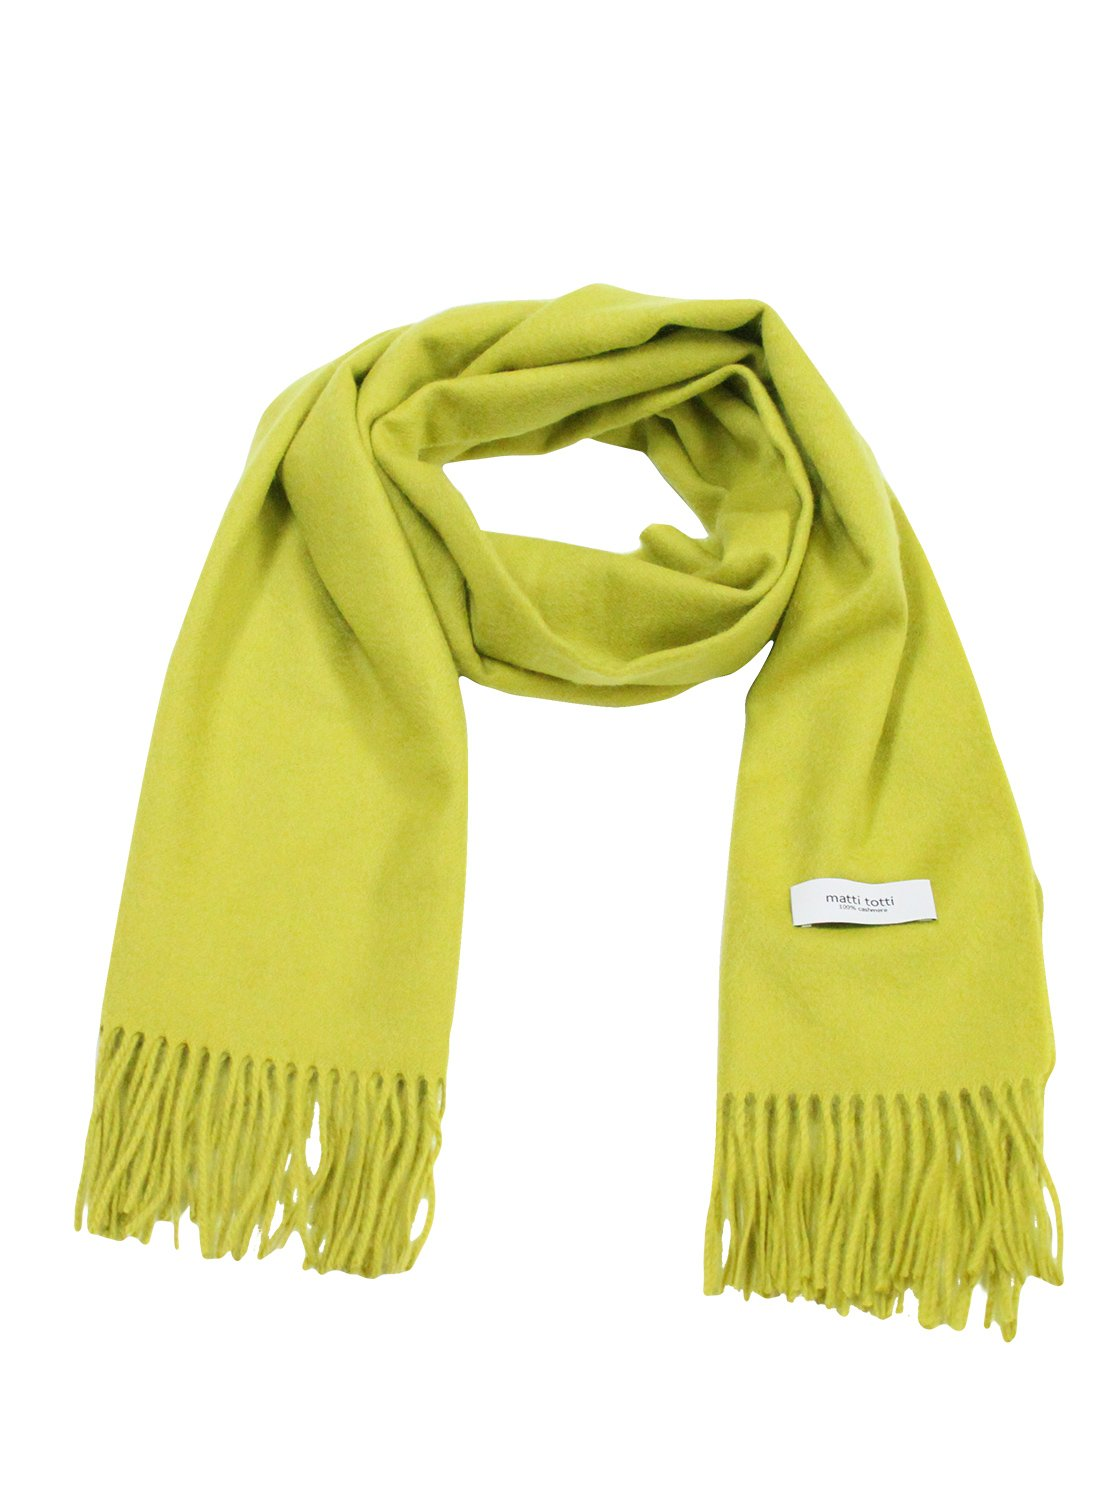 Greenery 100% Cashmere Shawl Stole Men's 2017 Gift Scarves Wrap Blanket A2124B2-21